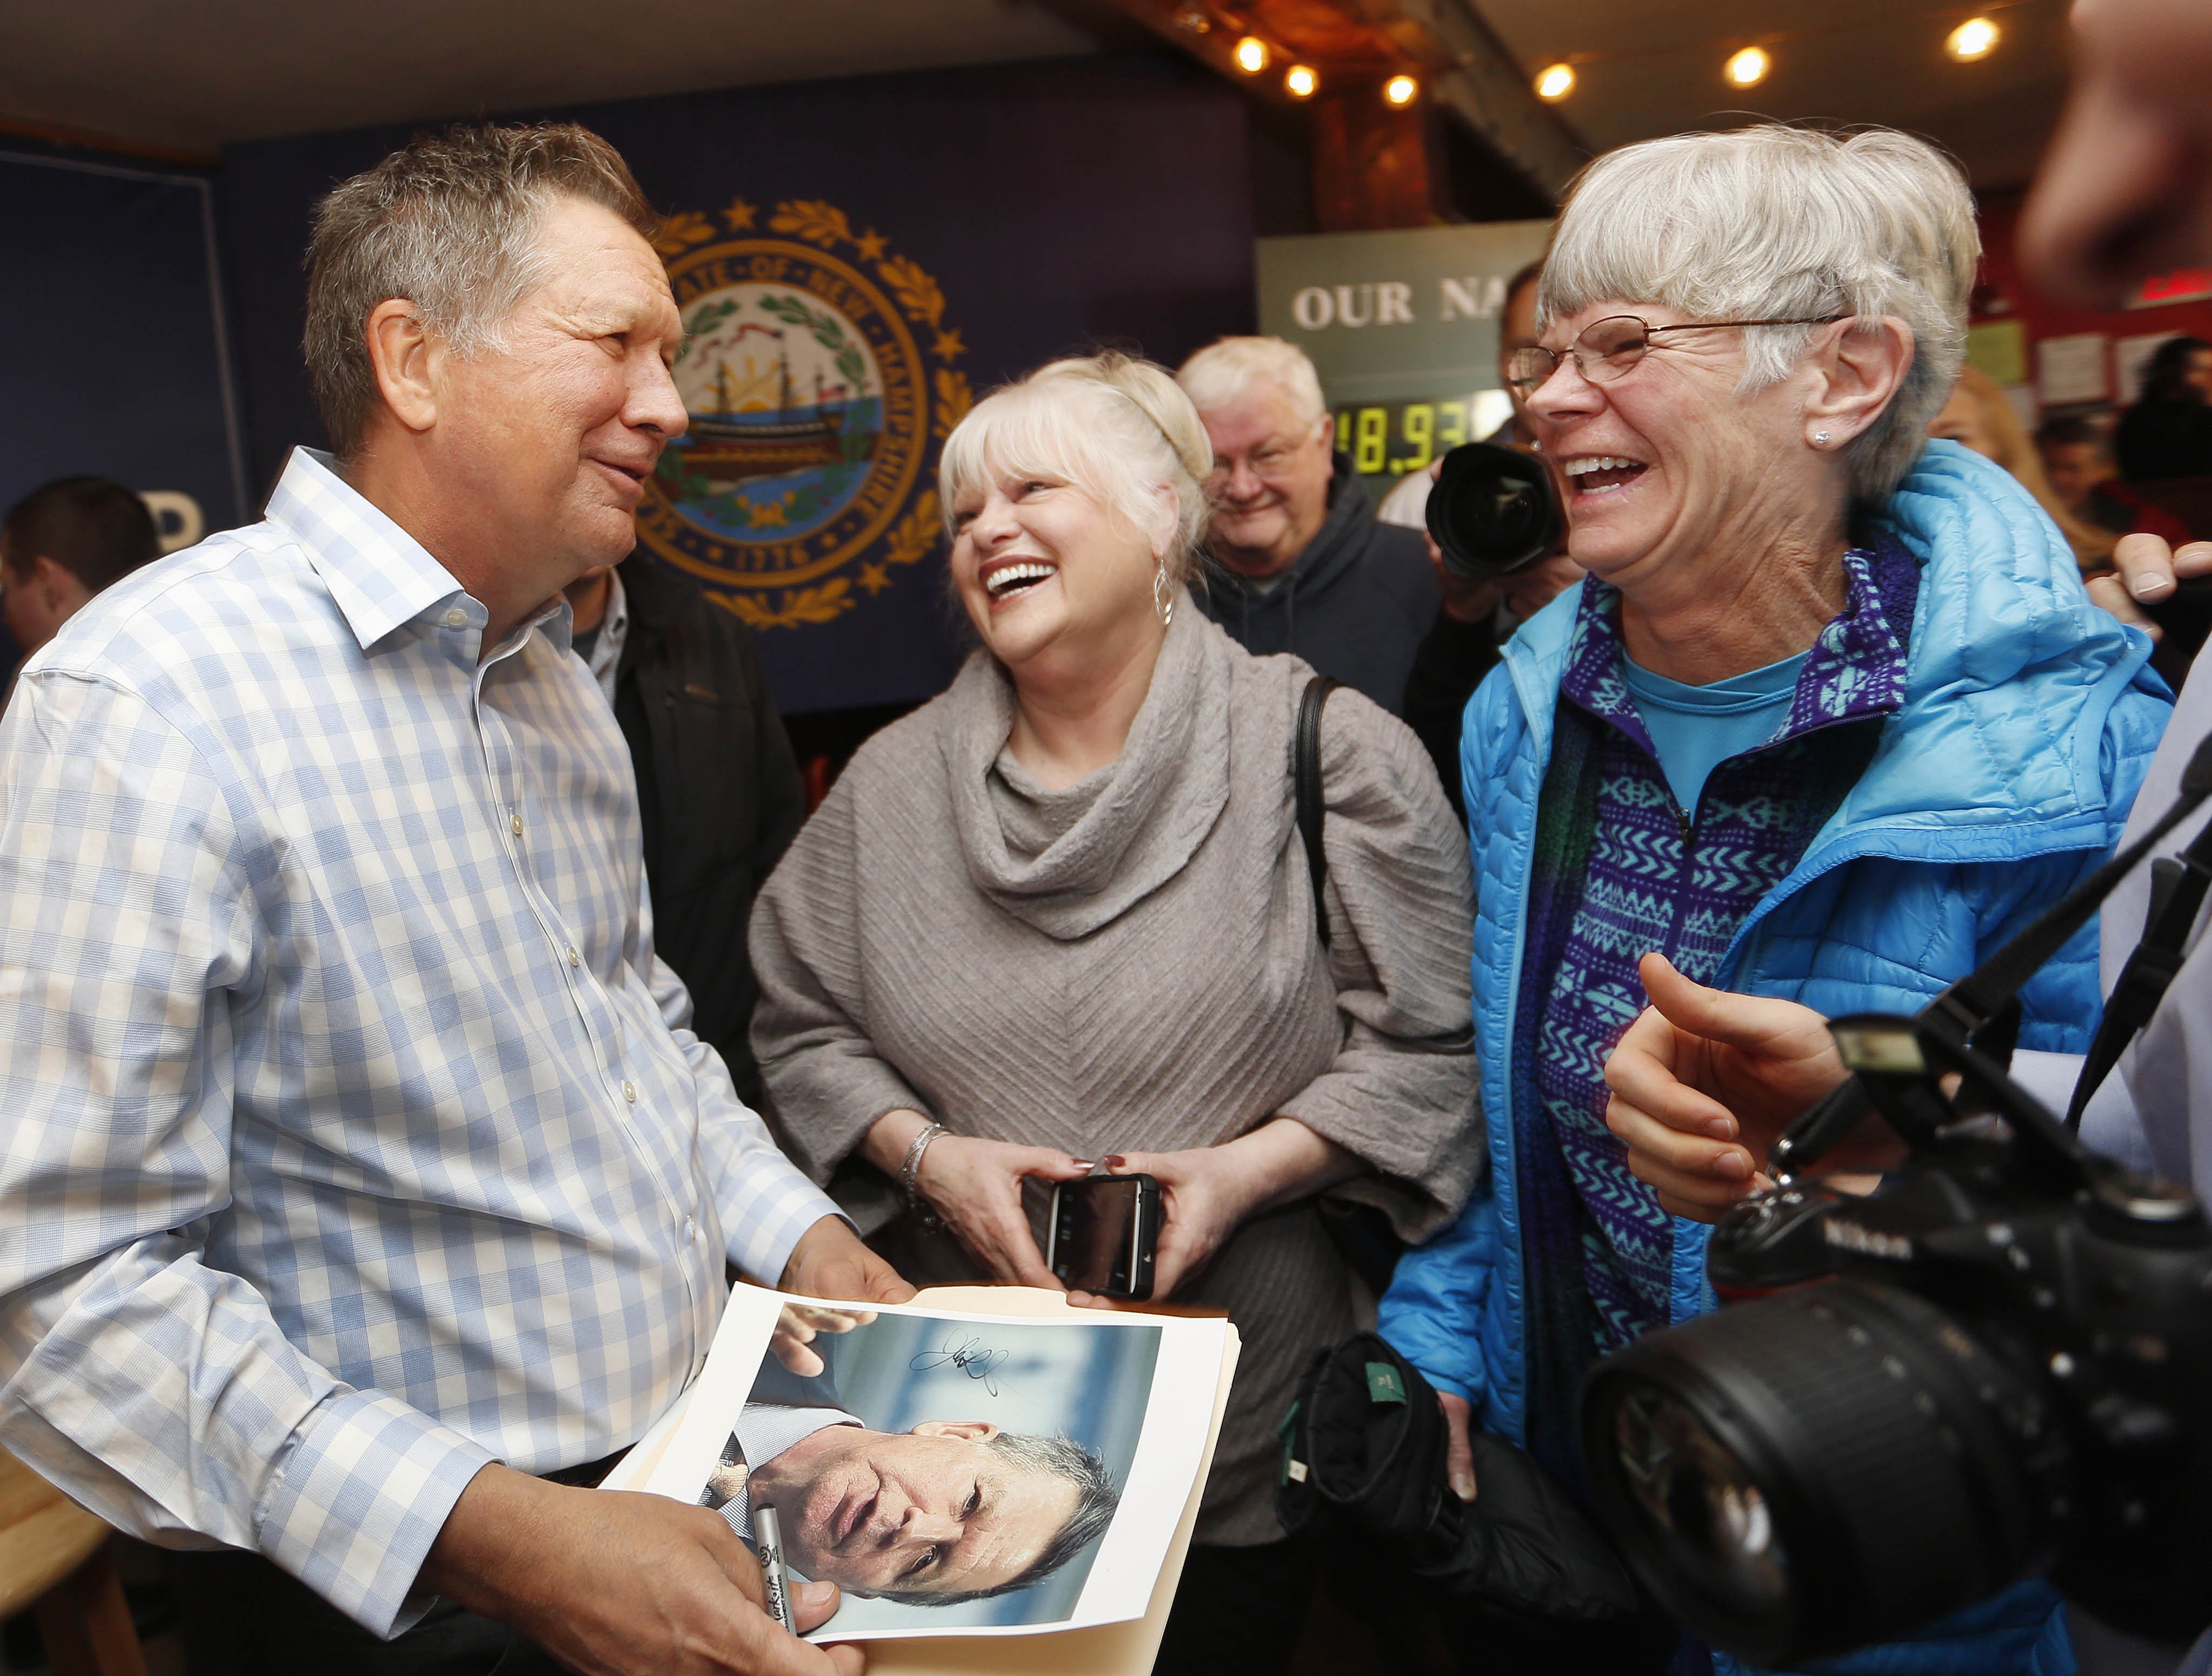 Republican presidential candidate and Ohio Governor John Kasich speaks to voters during a campaign stop at a music-club tavern called the Stone Church on Jan. 25, 2016, in Newmarket, N.H.